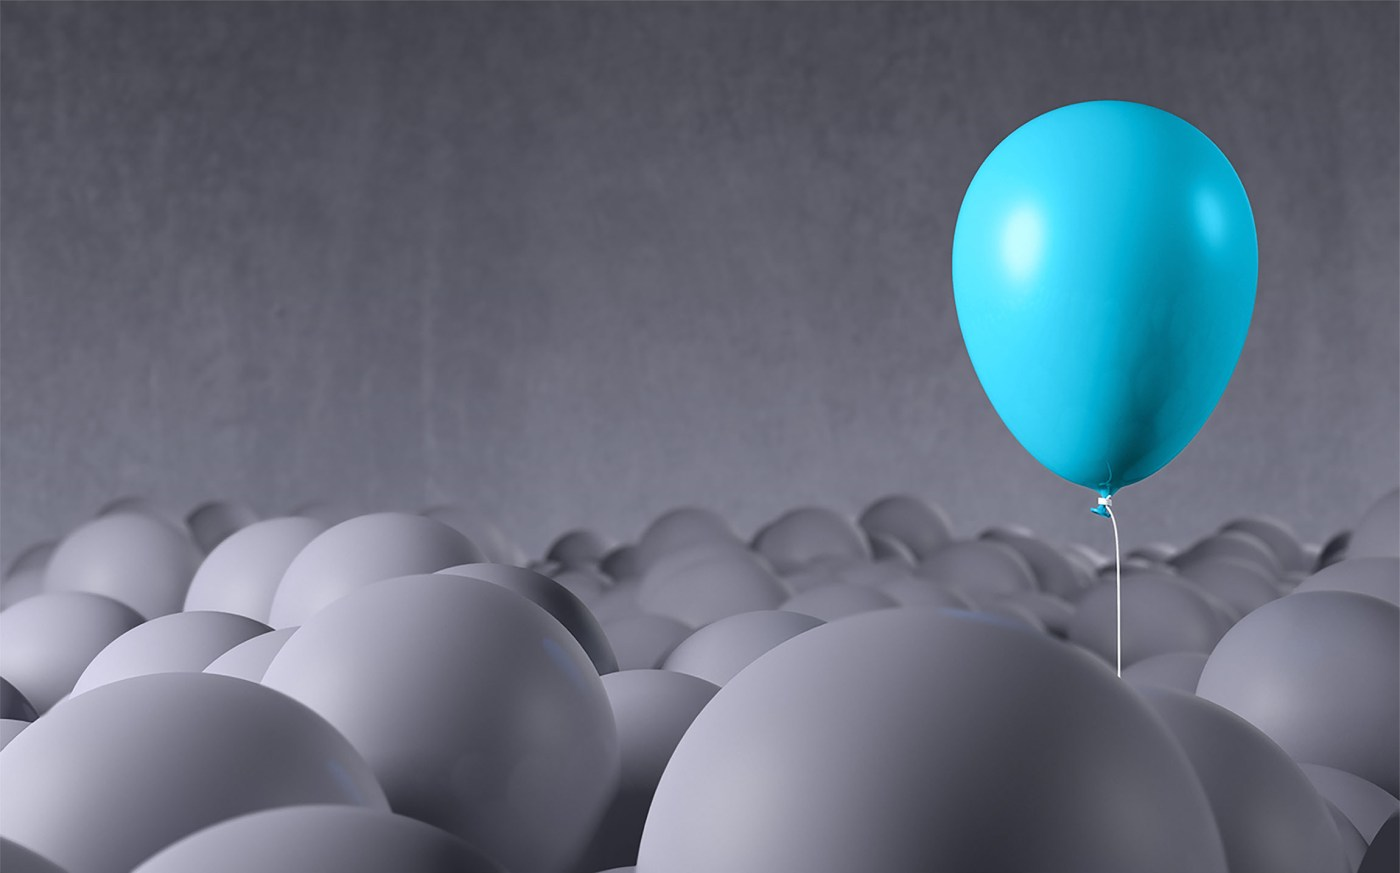 Blue balloon rising from gray background: individuality, standing out